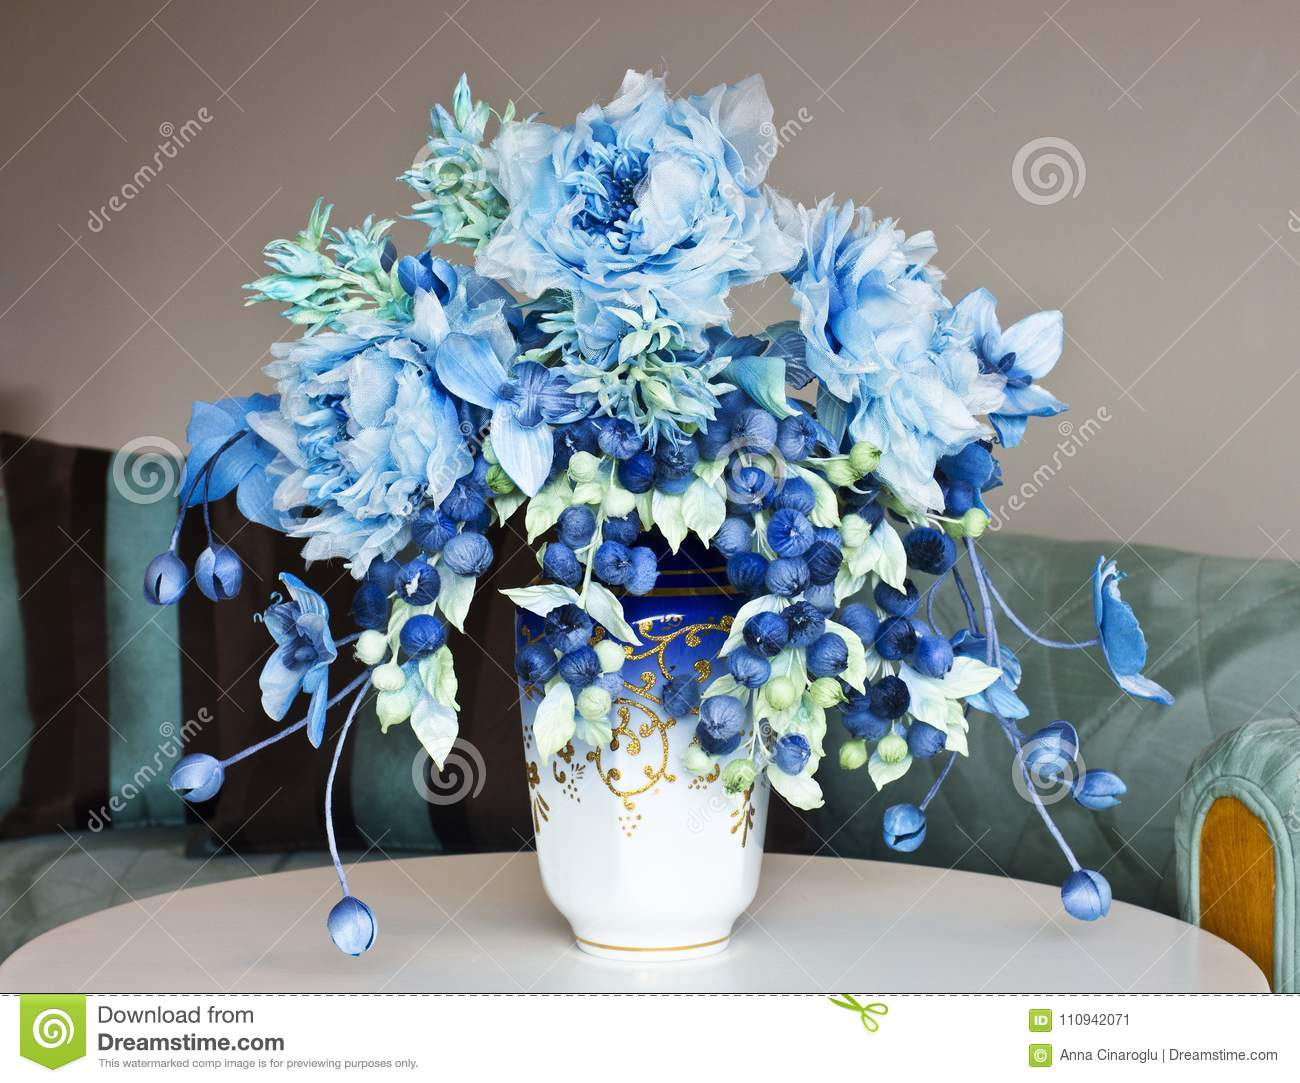 Bouquet With Blue Large Flowers And Closed Buds Artificial Flow Stock Image Image Of Green Gift 110942071